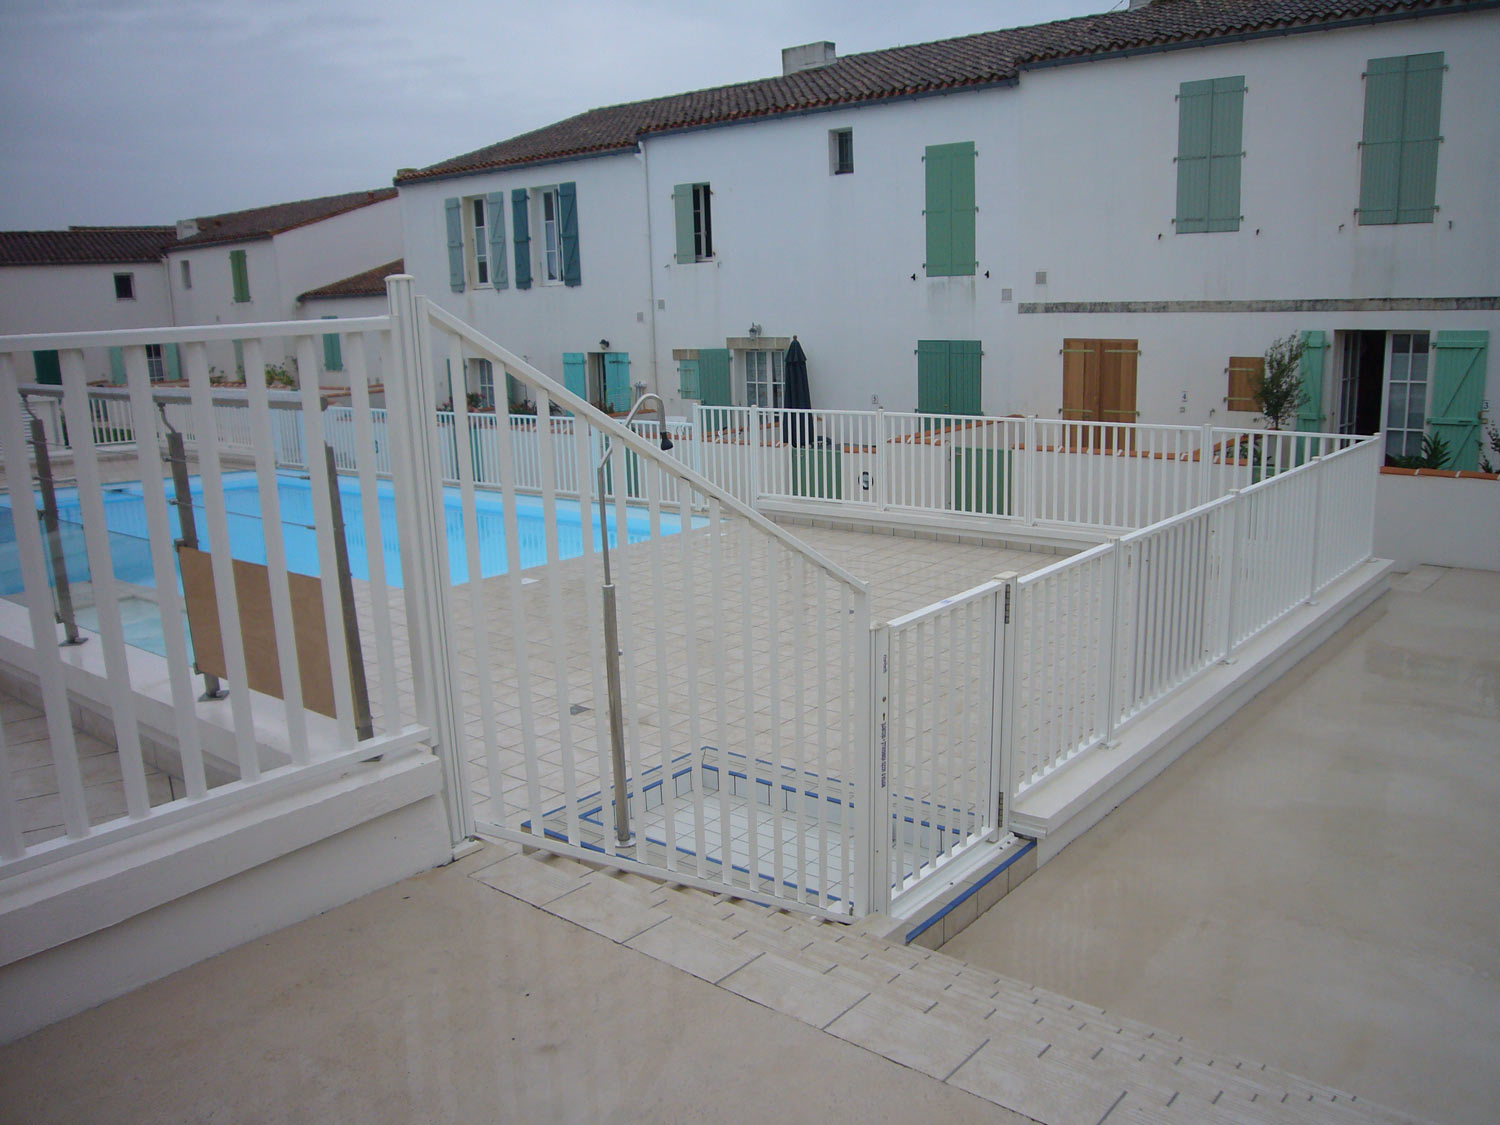 Barriere de protection piscine photo 117 barrieres de for Barriere de protection piscine